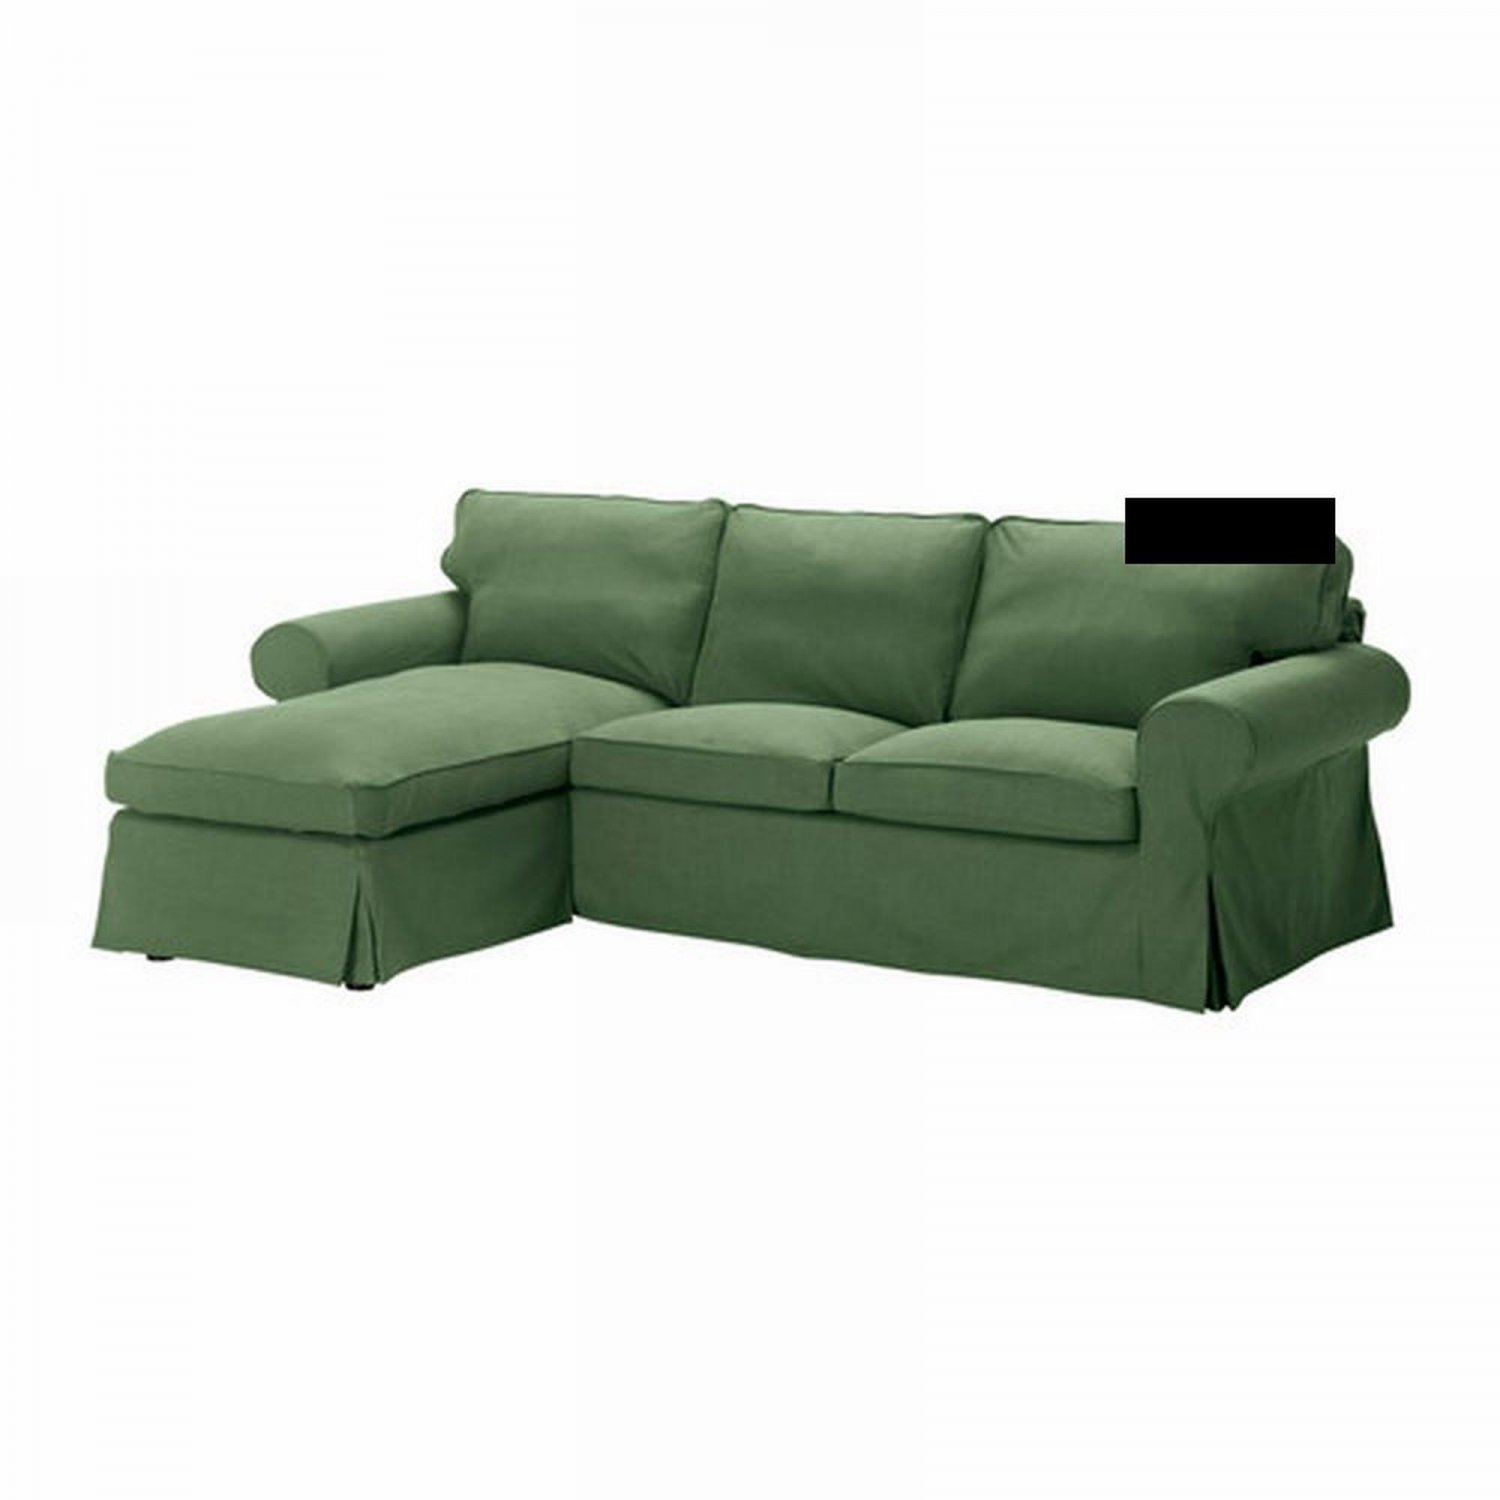 Ikea ektorp 2 seat loveseat w chaise cover 3 seat sectional slipcover svanby green linen blend Loveseat slip cover